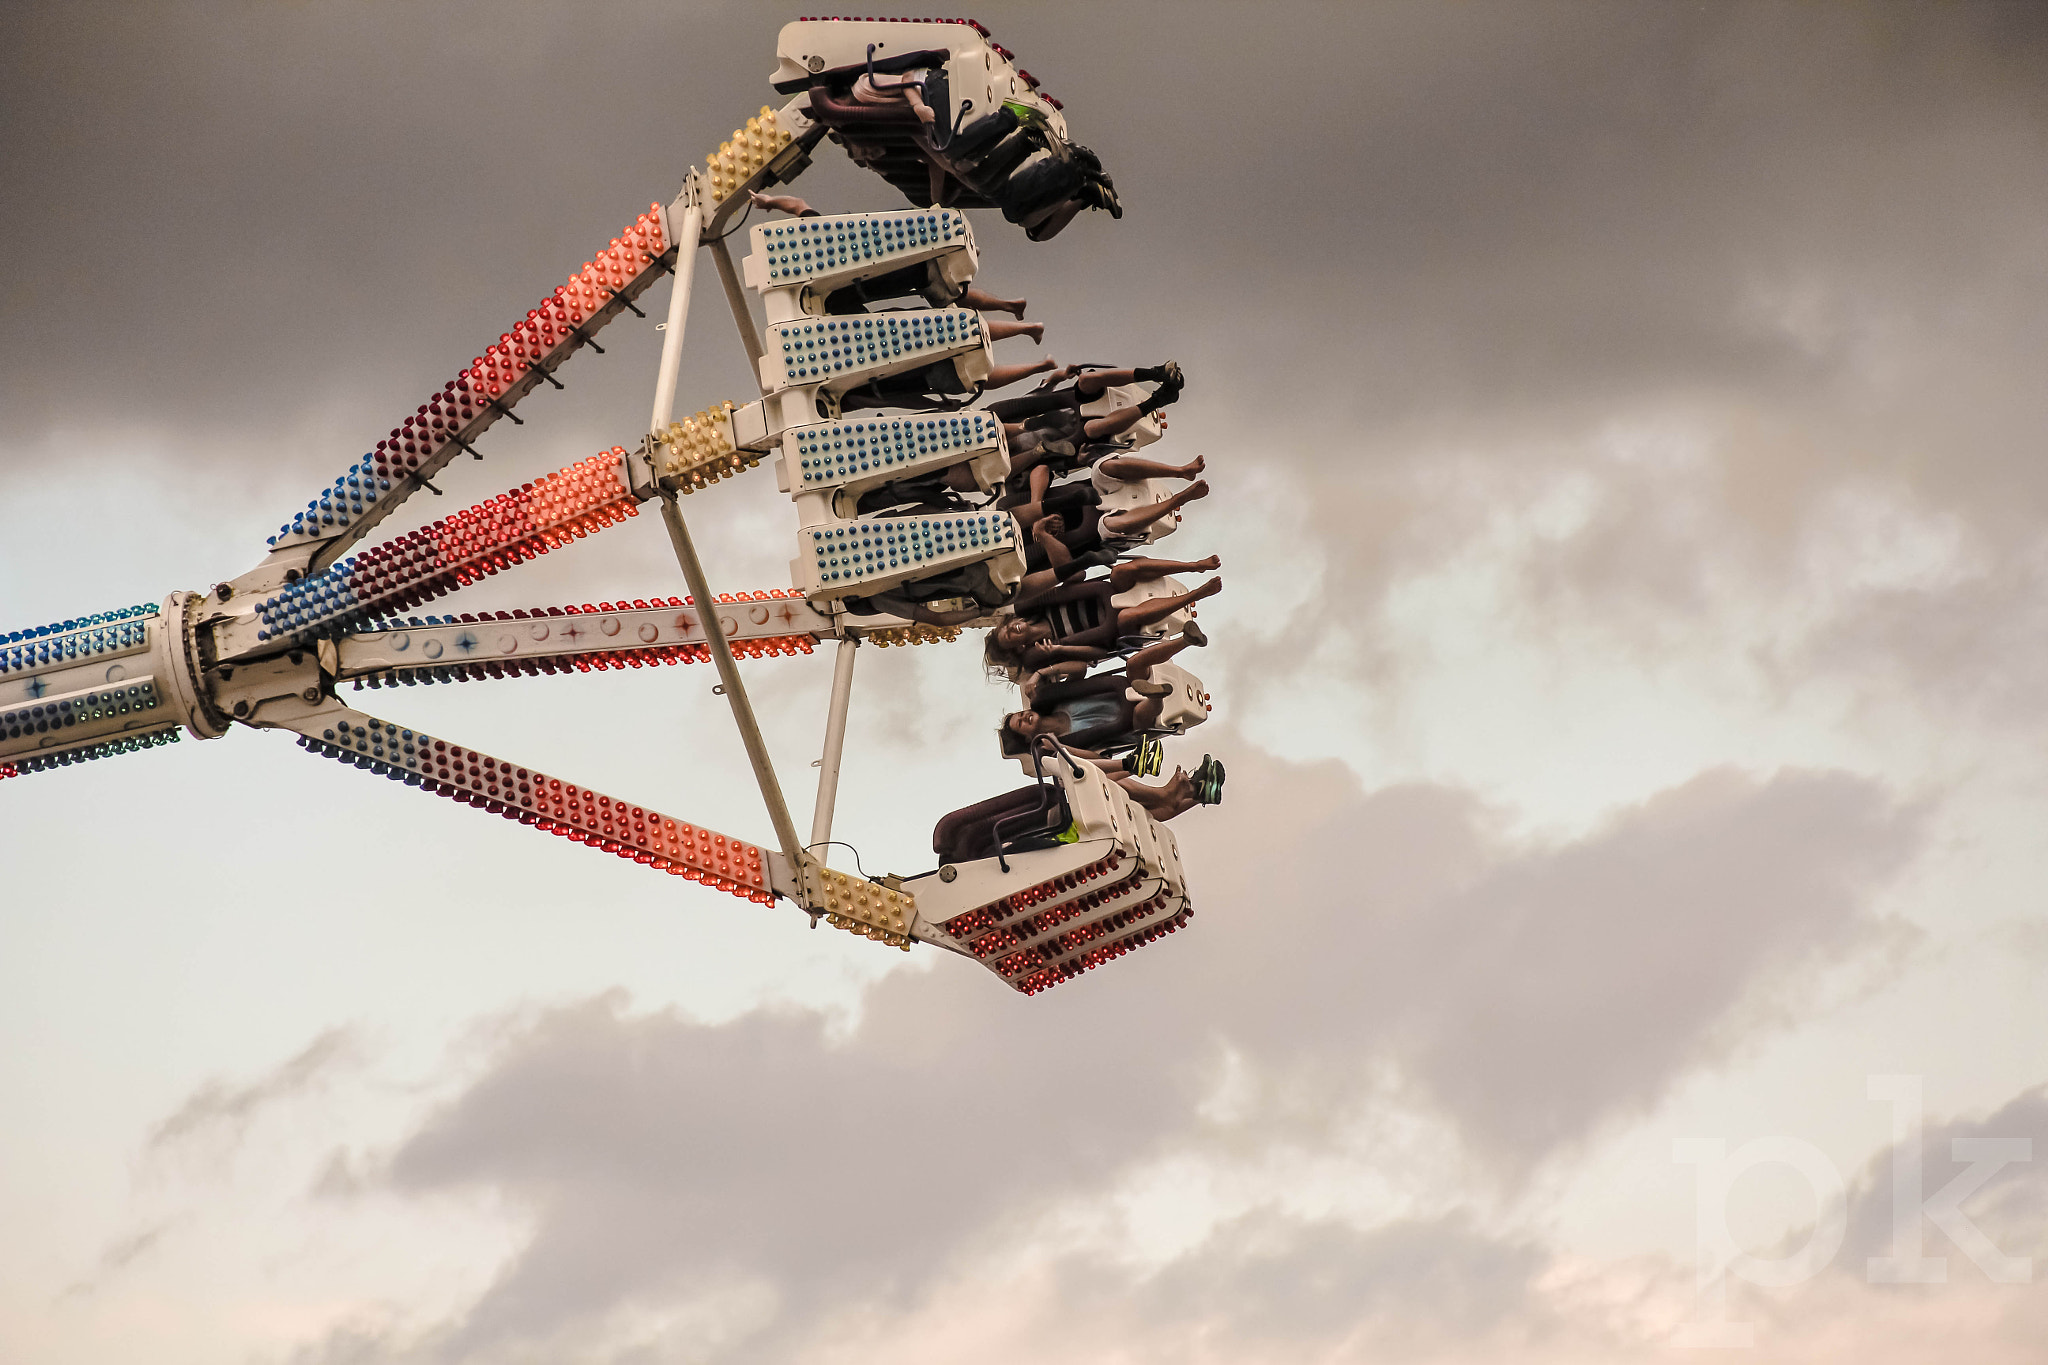 Photograph The Claw by Patrick Knerr on 500px